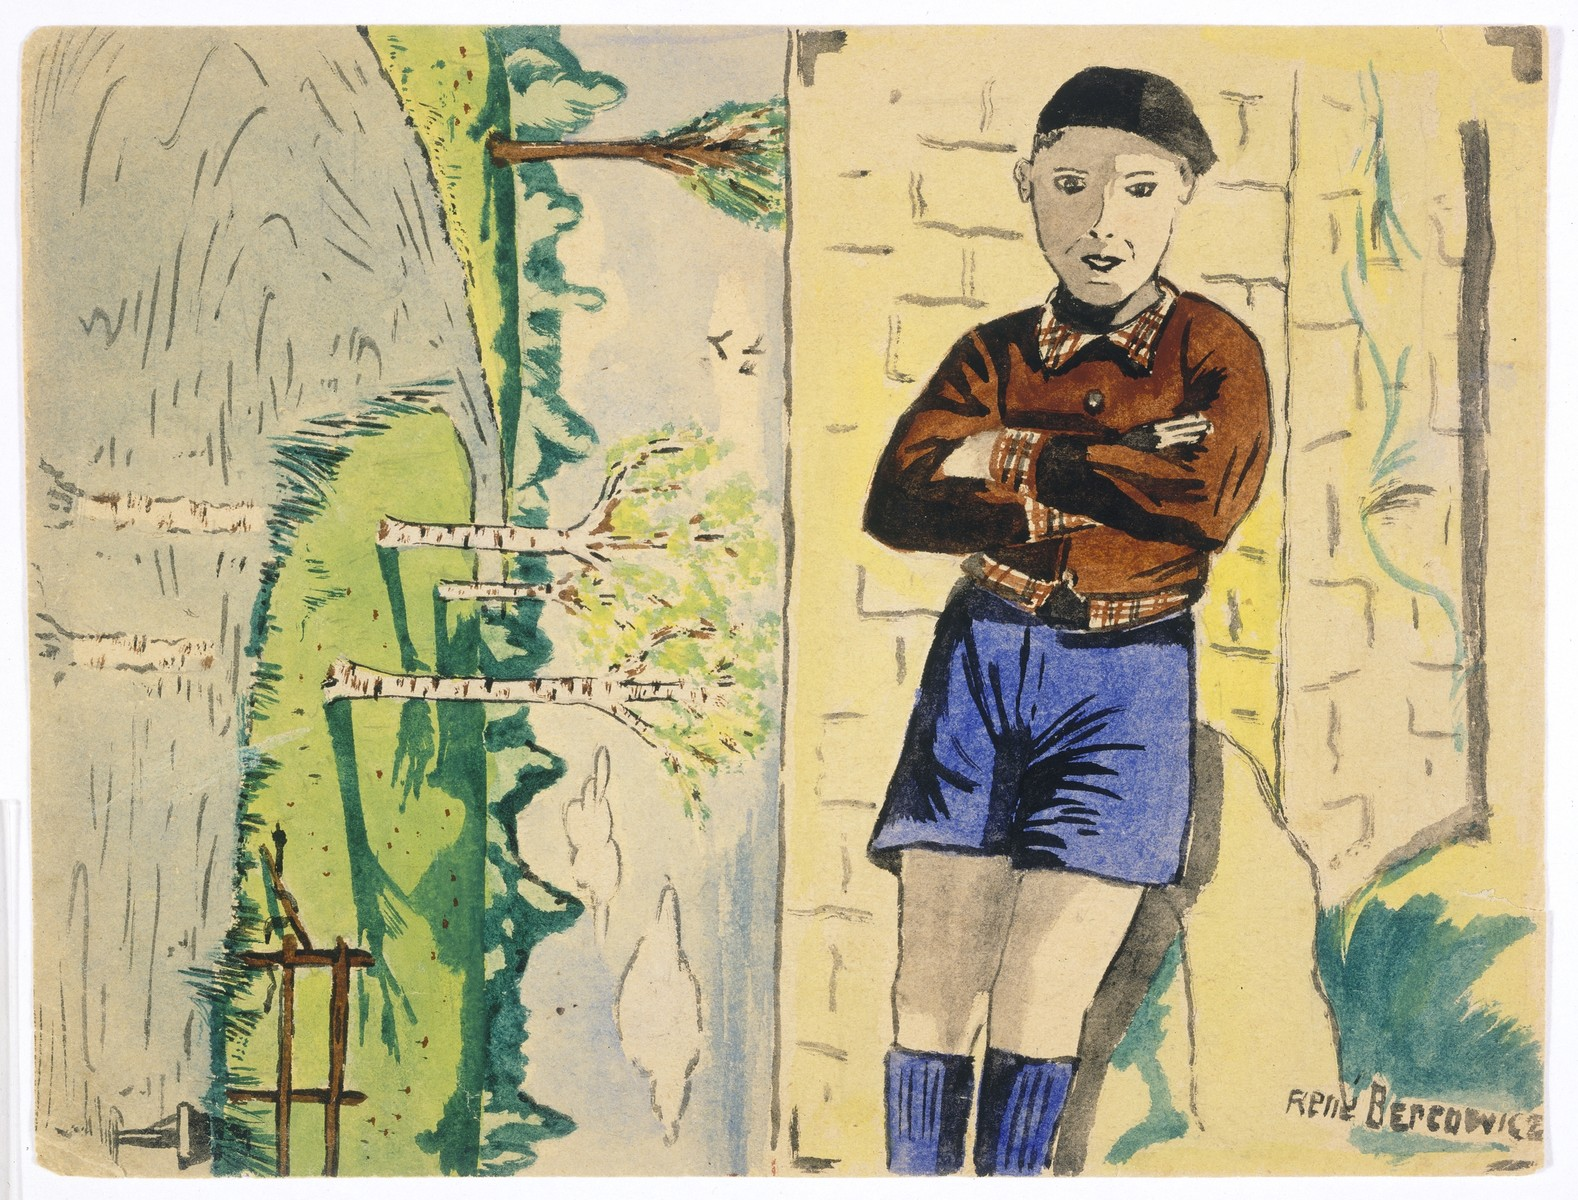 Two watercolor paintings by Simon Jeruchim.  At the right is an image of Rene Bercowicz, a Jewish acquaintance of the artist.  On the left is a picture of a river that Simon drew from memory.